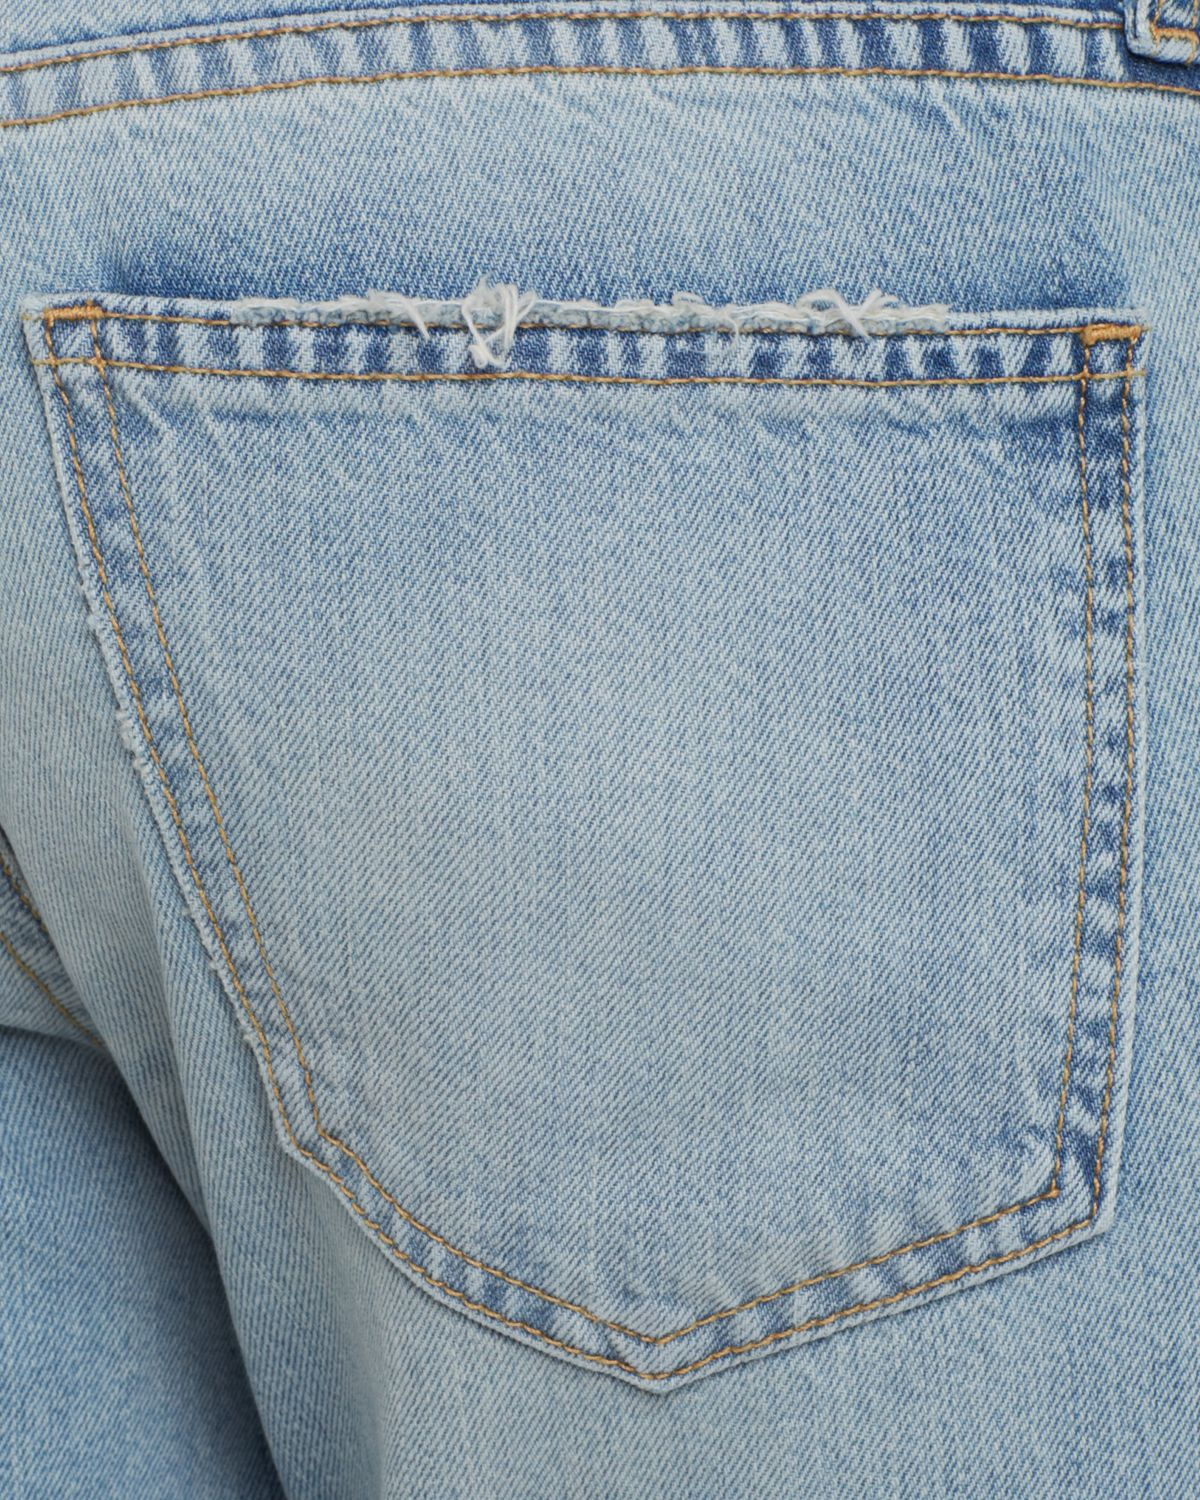 Current/Elliott Jeans - The Cropped Straight In Sealine Destroy in Blue